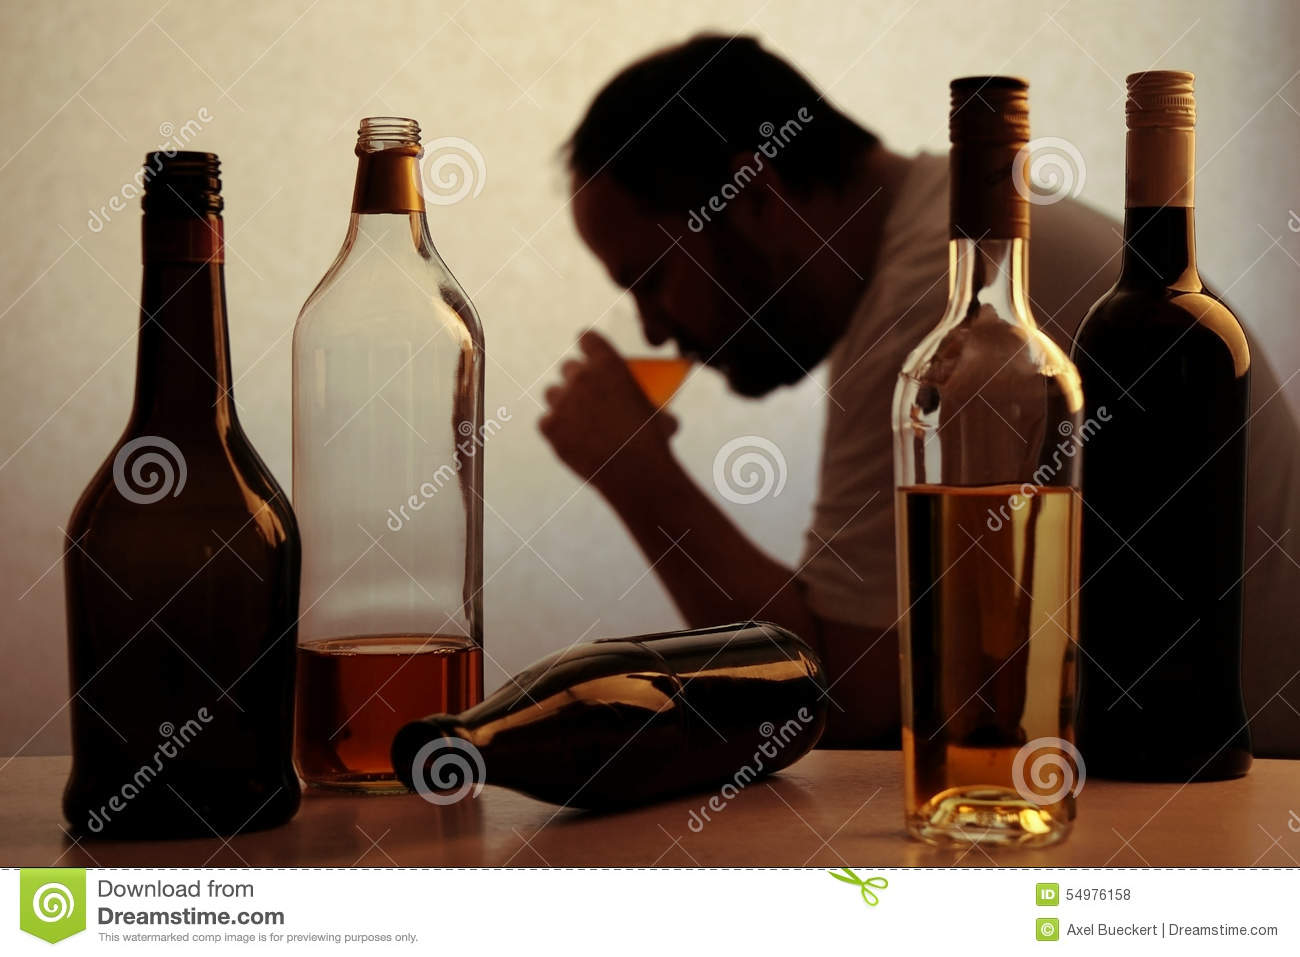 alcohol-drinking-problem-silhouette-anon